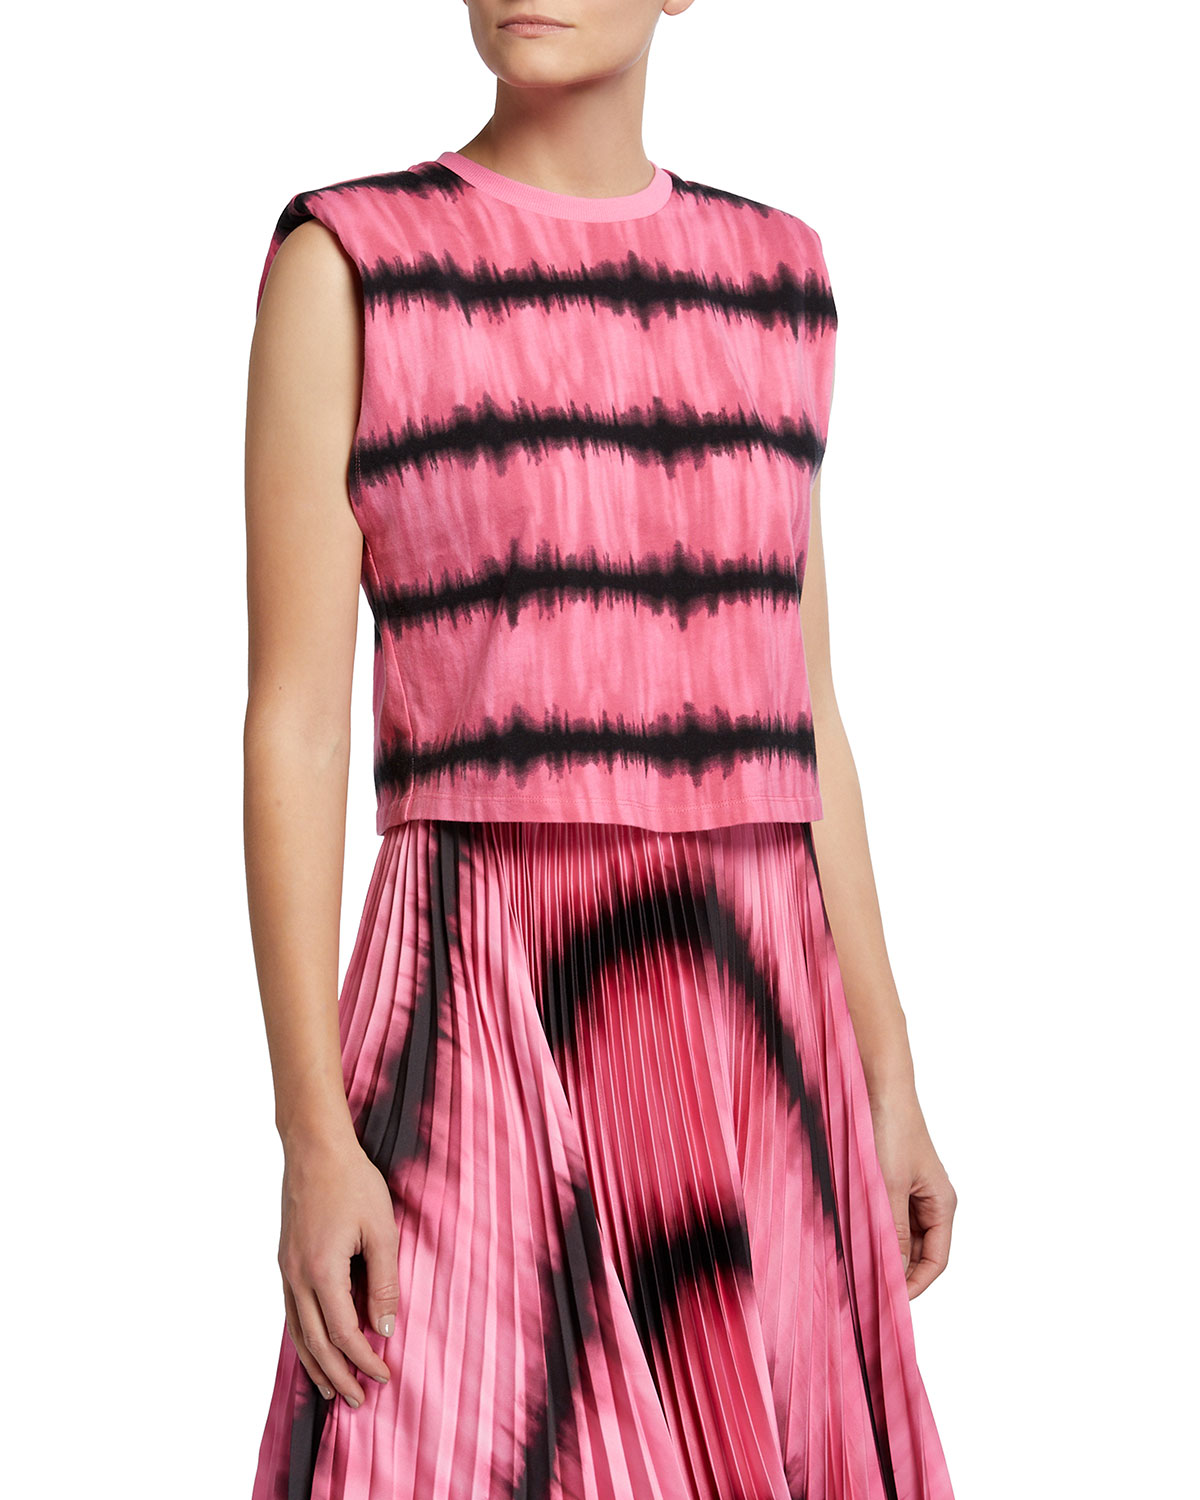 Alice And Olivia Cottons DESMA TIE-DYE TANK WITH SHOULDER PADS